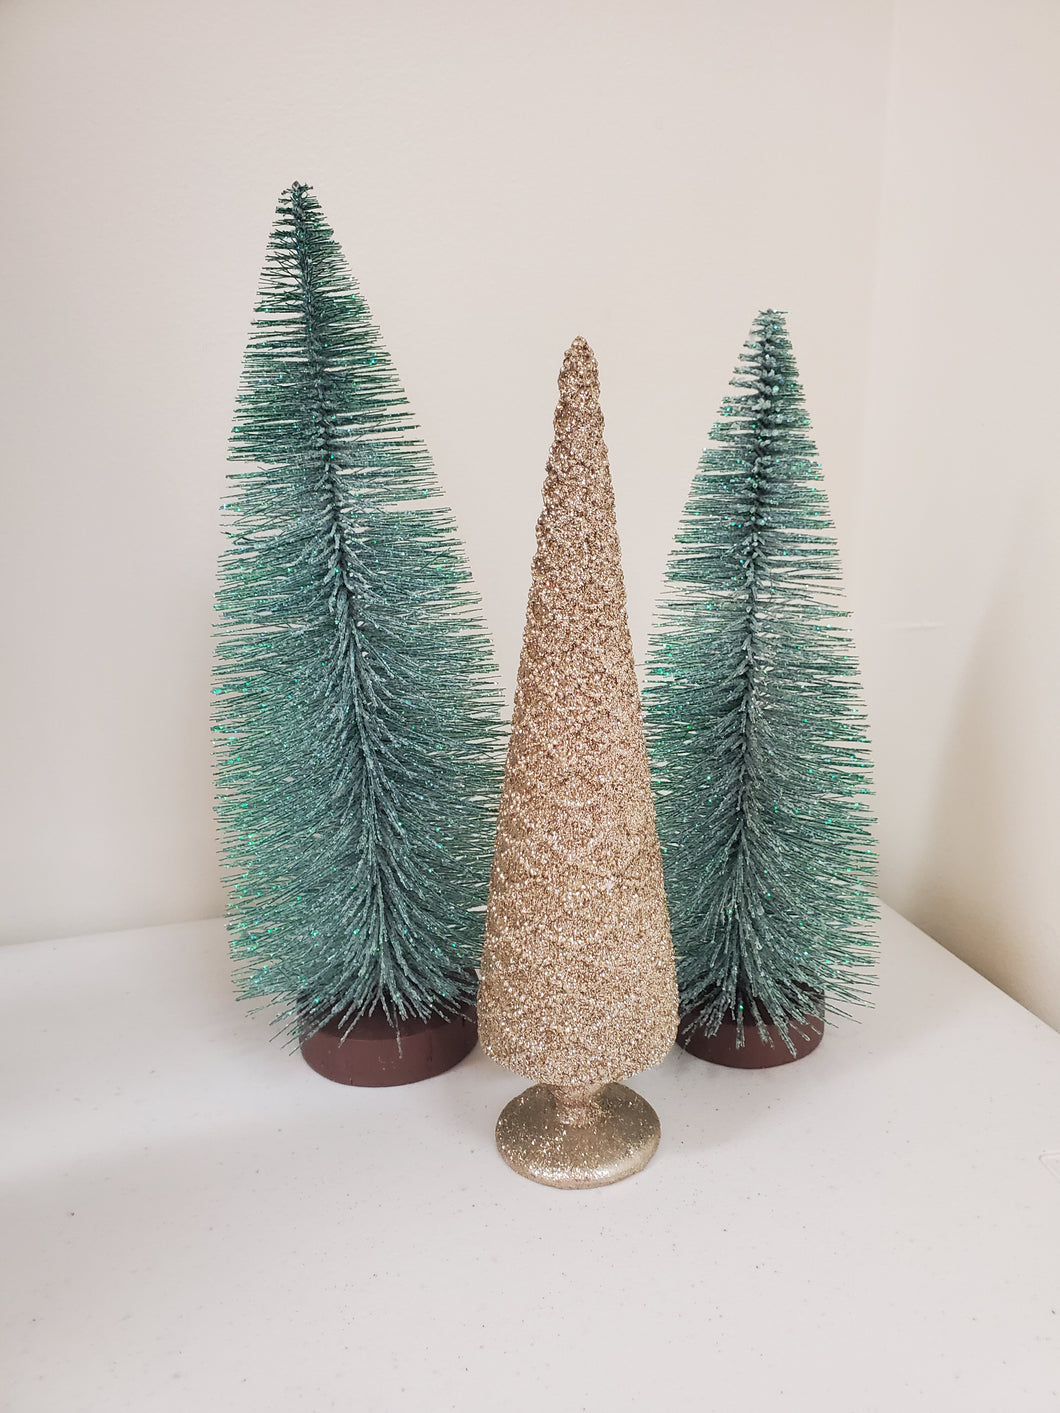 GREEN & GOLD TREES: SET OF 3